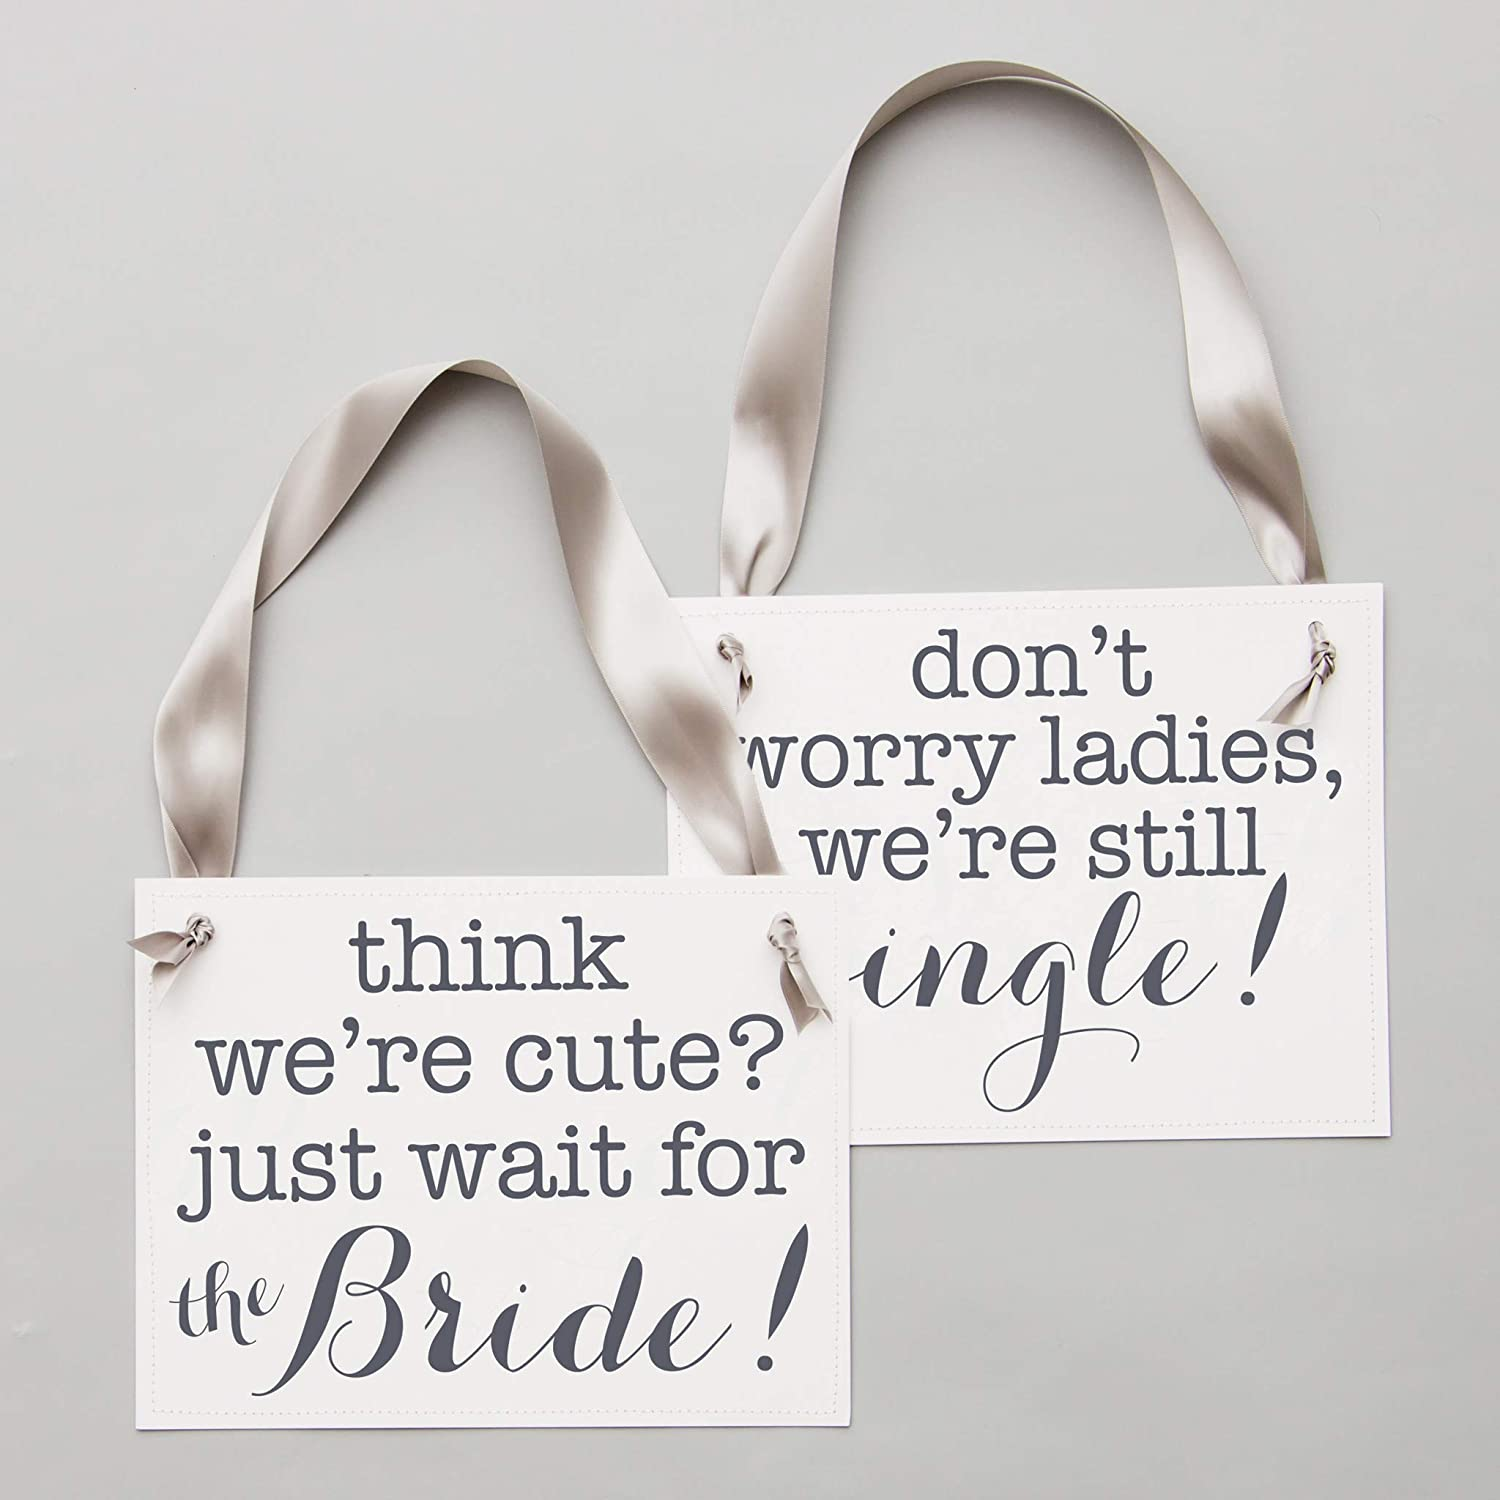 2 Ring Bearer Signs Funny Wedding Banners Satz | Think We'Re Cute? nur Wait für die Bride + Don'T Worry Ladies, We'Re Still Single | Slate Ink auf White Paper Gray Ribbon